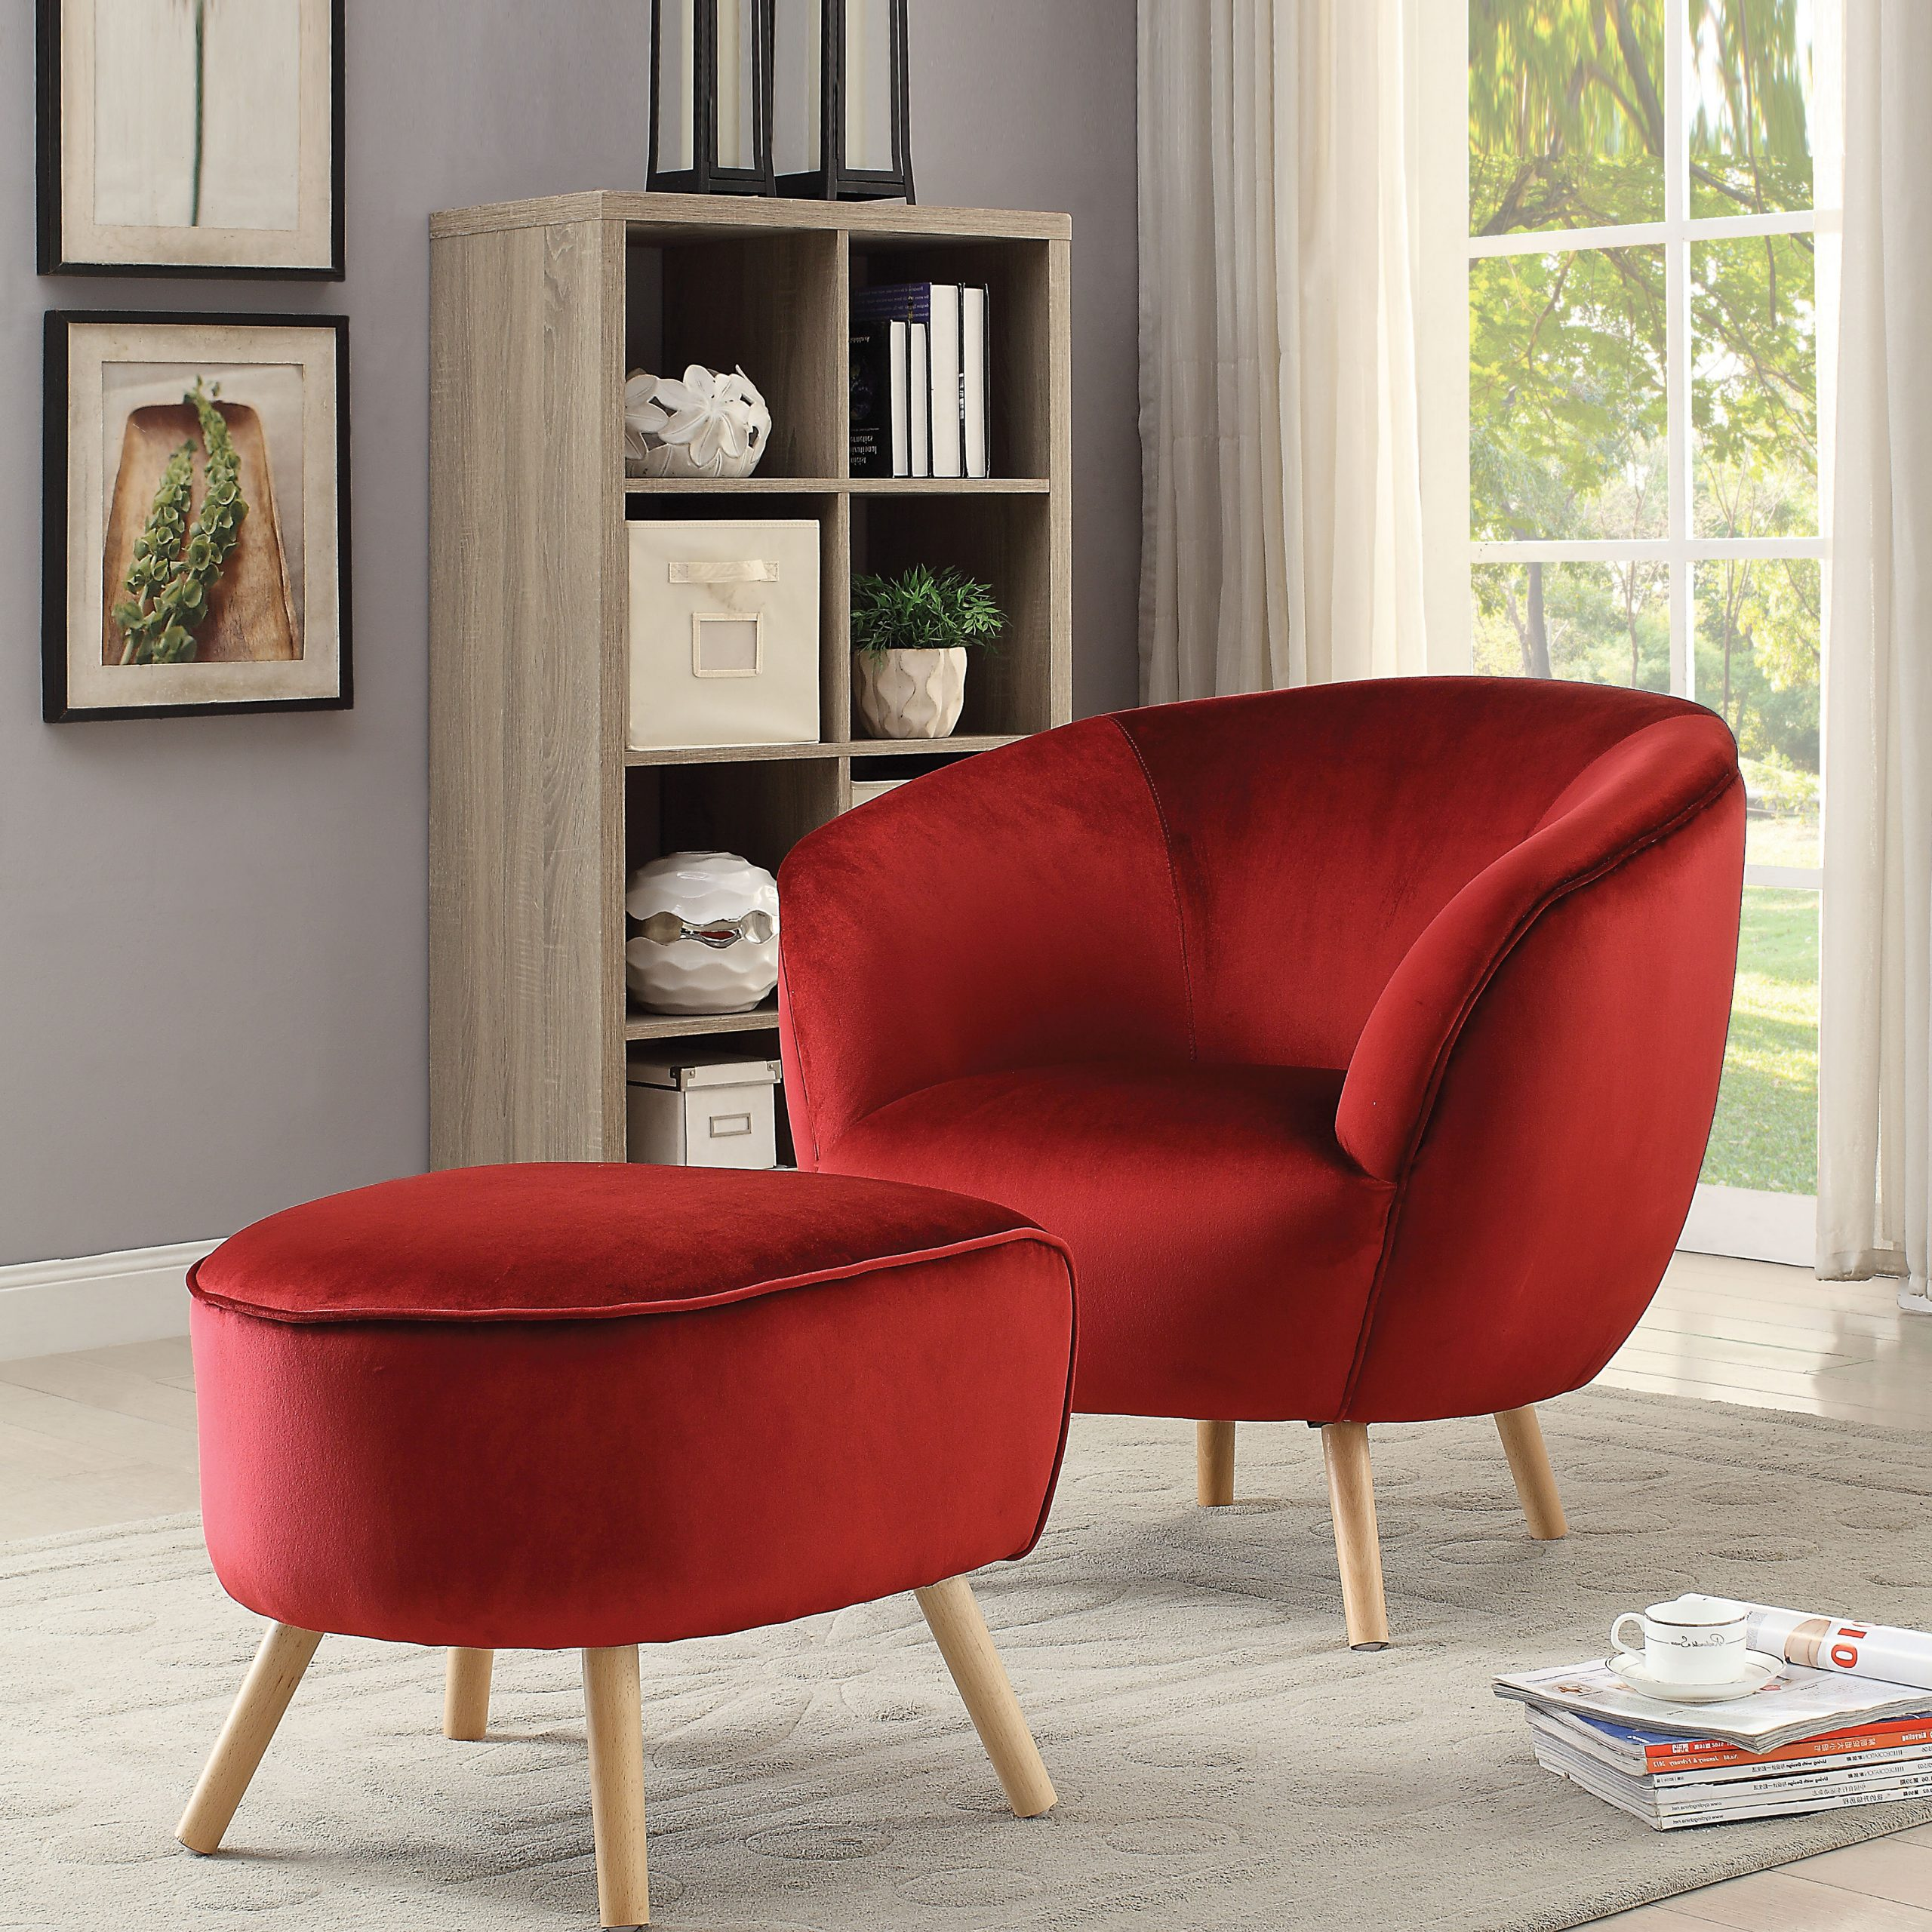 Shipststour Armchair And Ottoman Intended For Most Recently Released Riverside Drive Barrel Chair And Ottoman Sets (View 5 of 20)